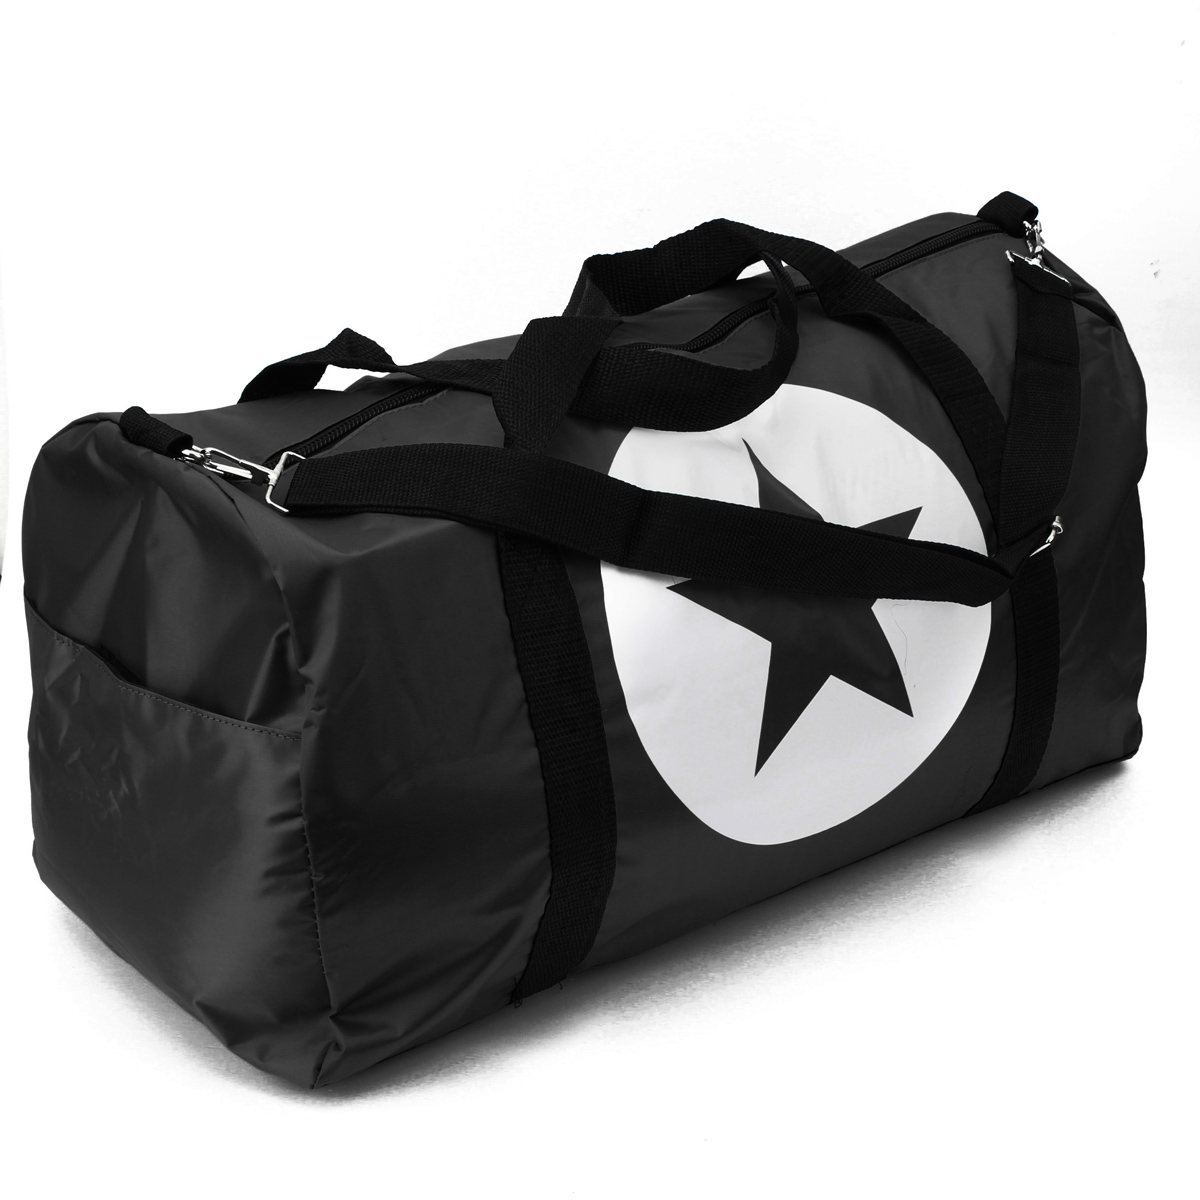 Women Men Unisex Travel Waterproof Nylon Bag Sports Fitness Handbag Gym Bag Tote